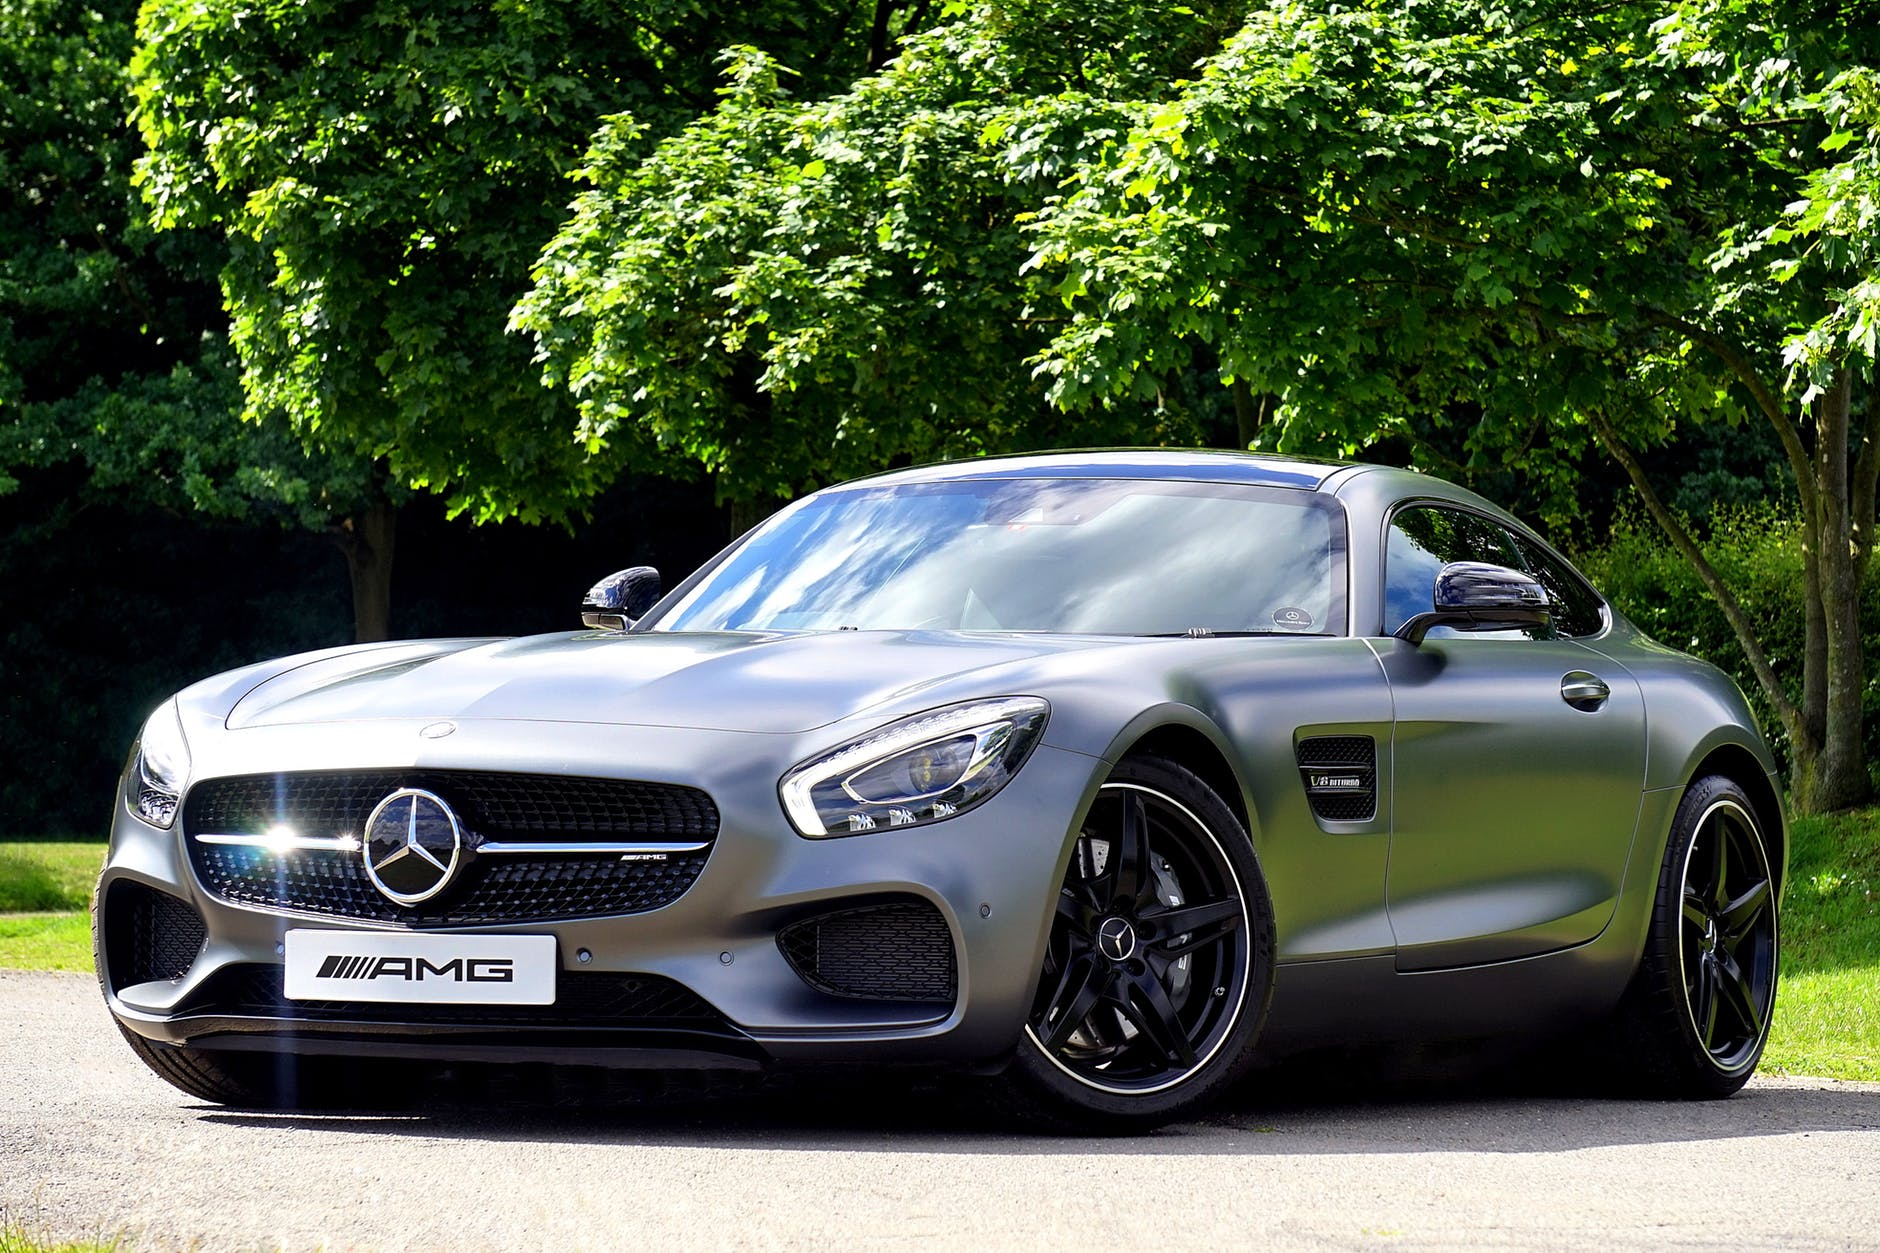 List Of The Top 5 Mercedes Vehicles